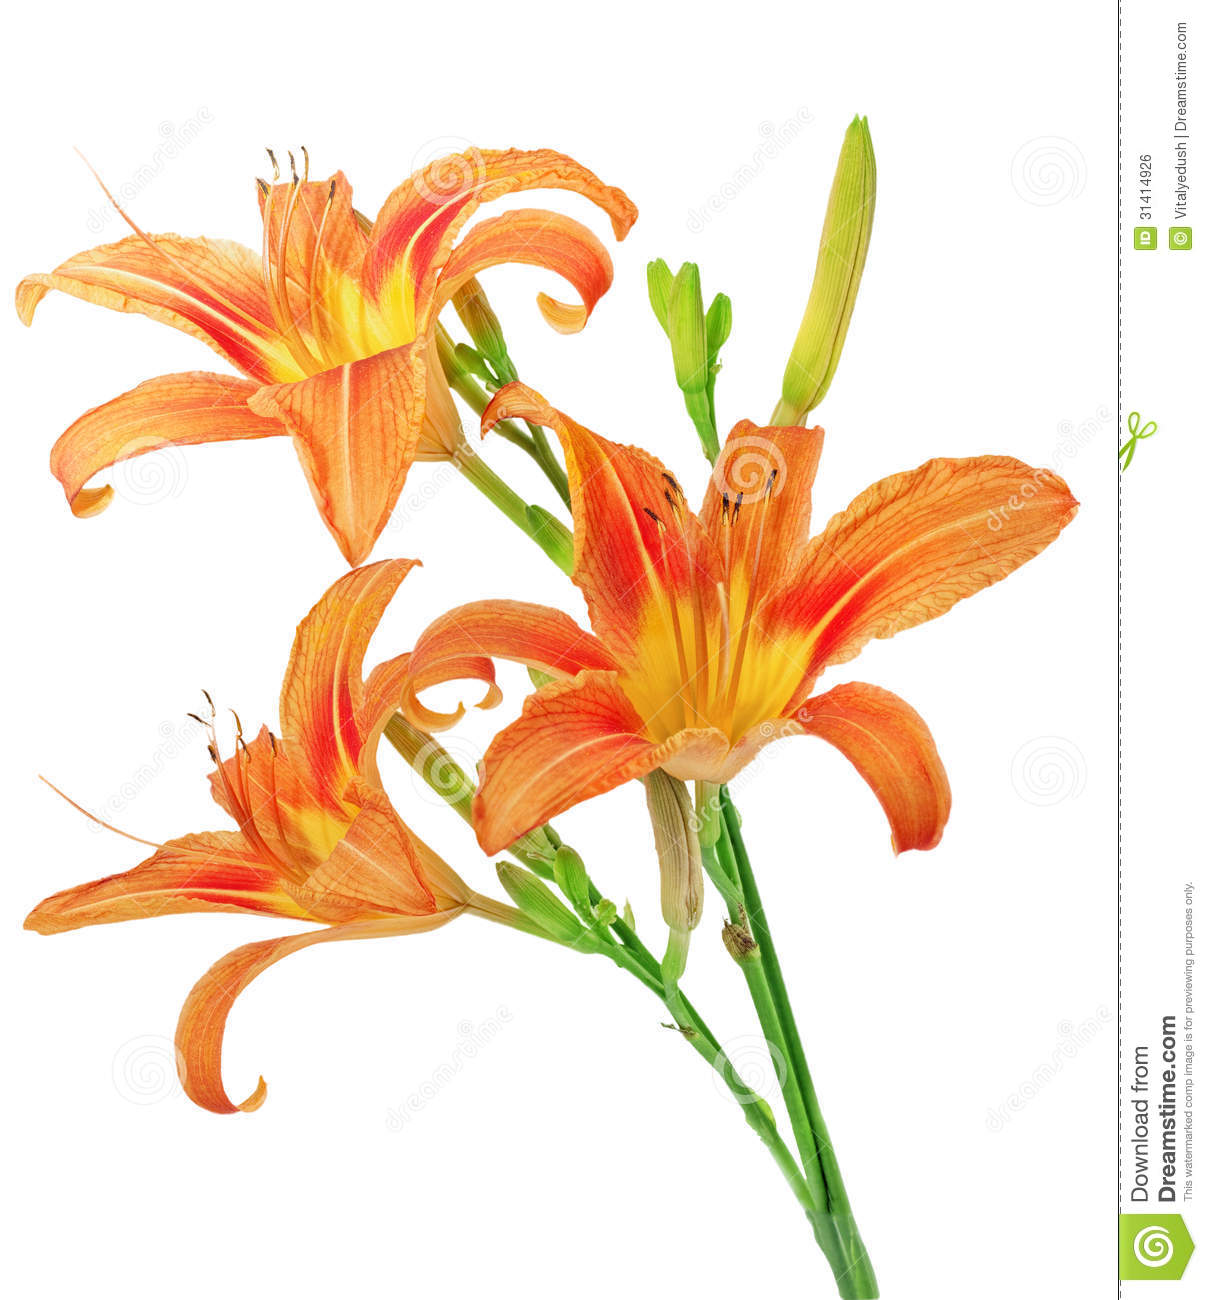 Tiger Lily clipart #4, Download drawings